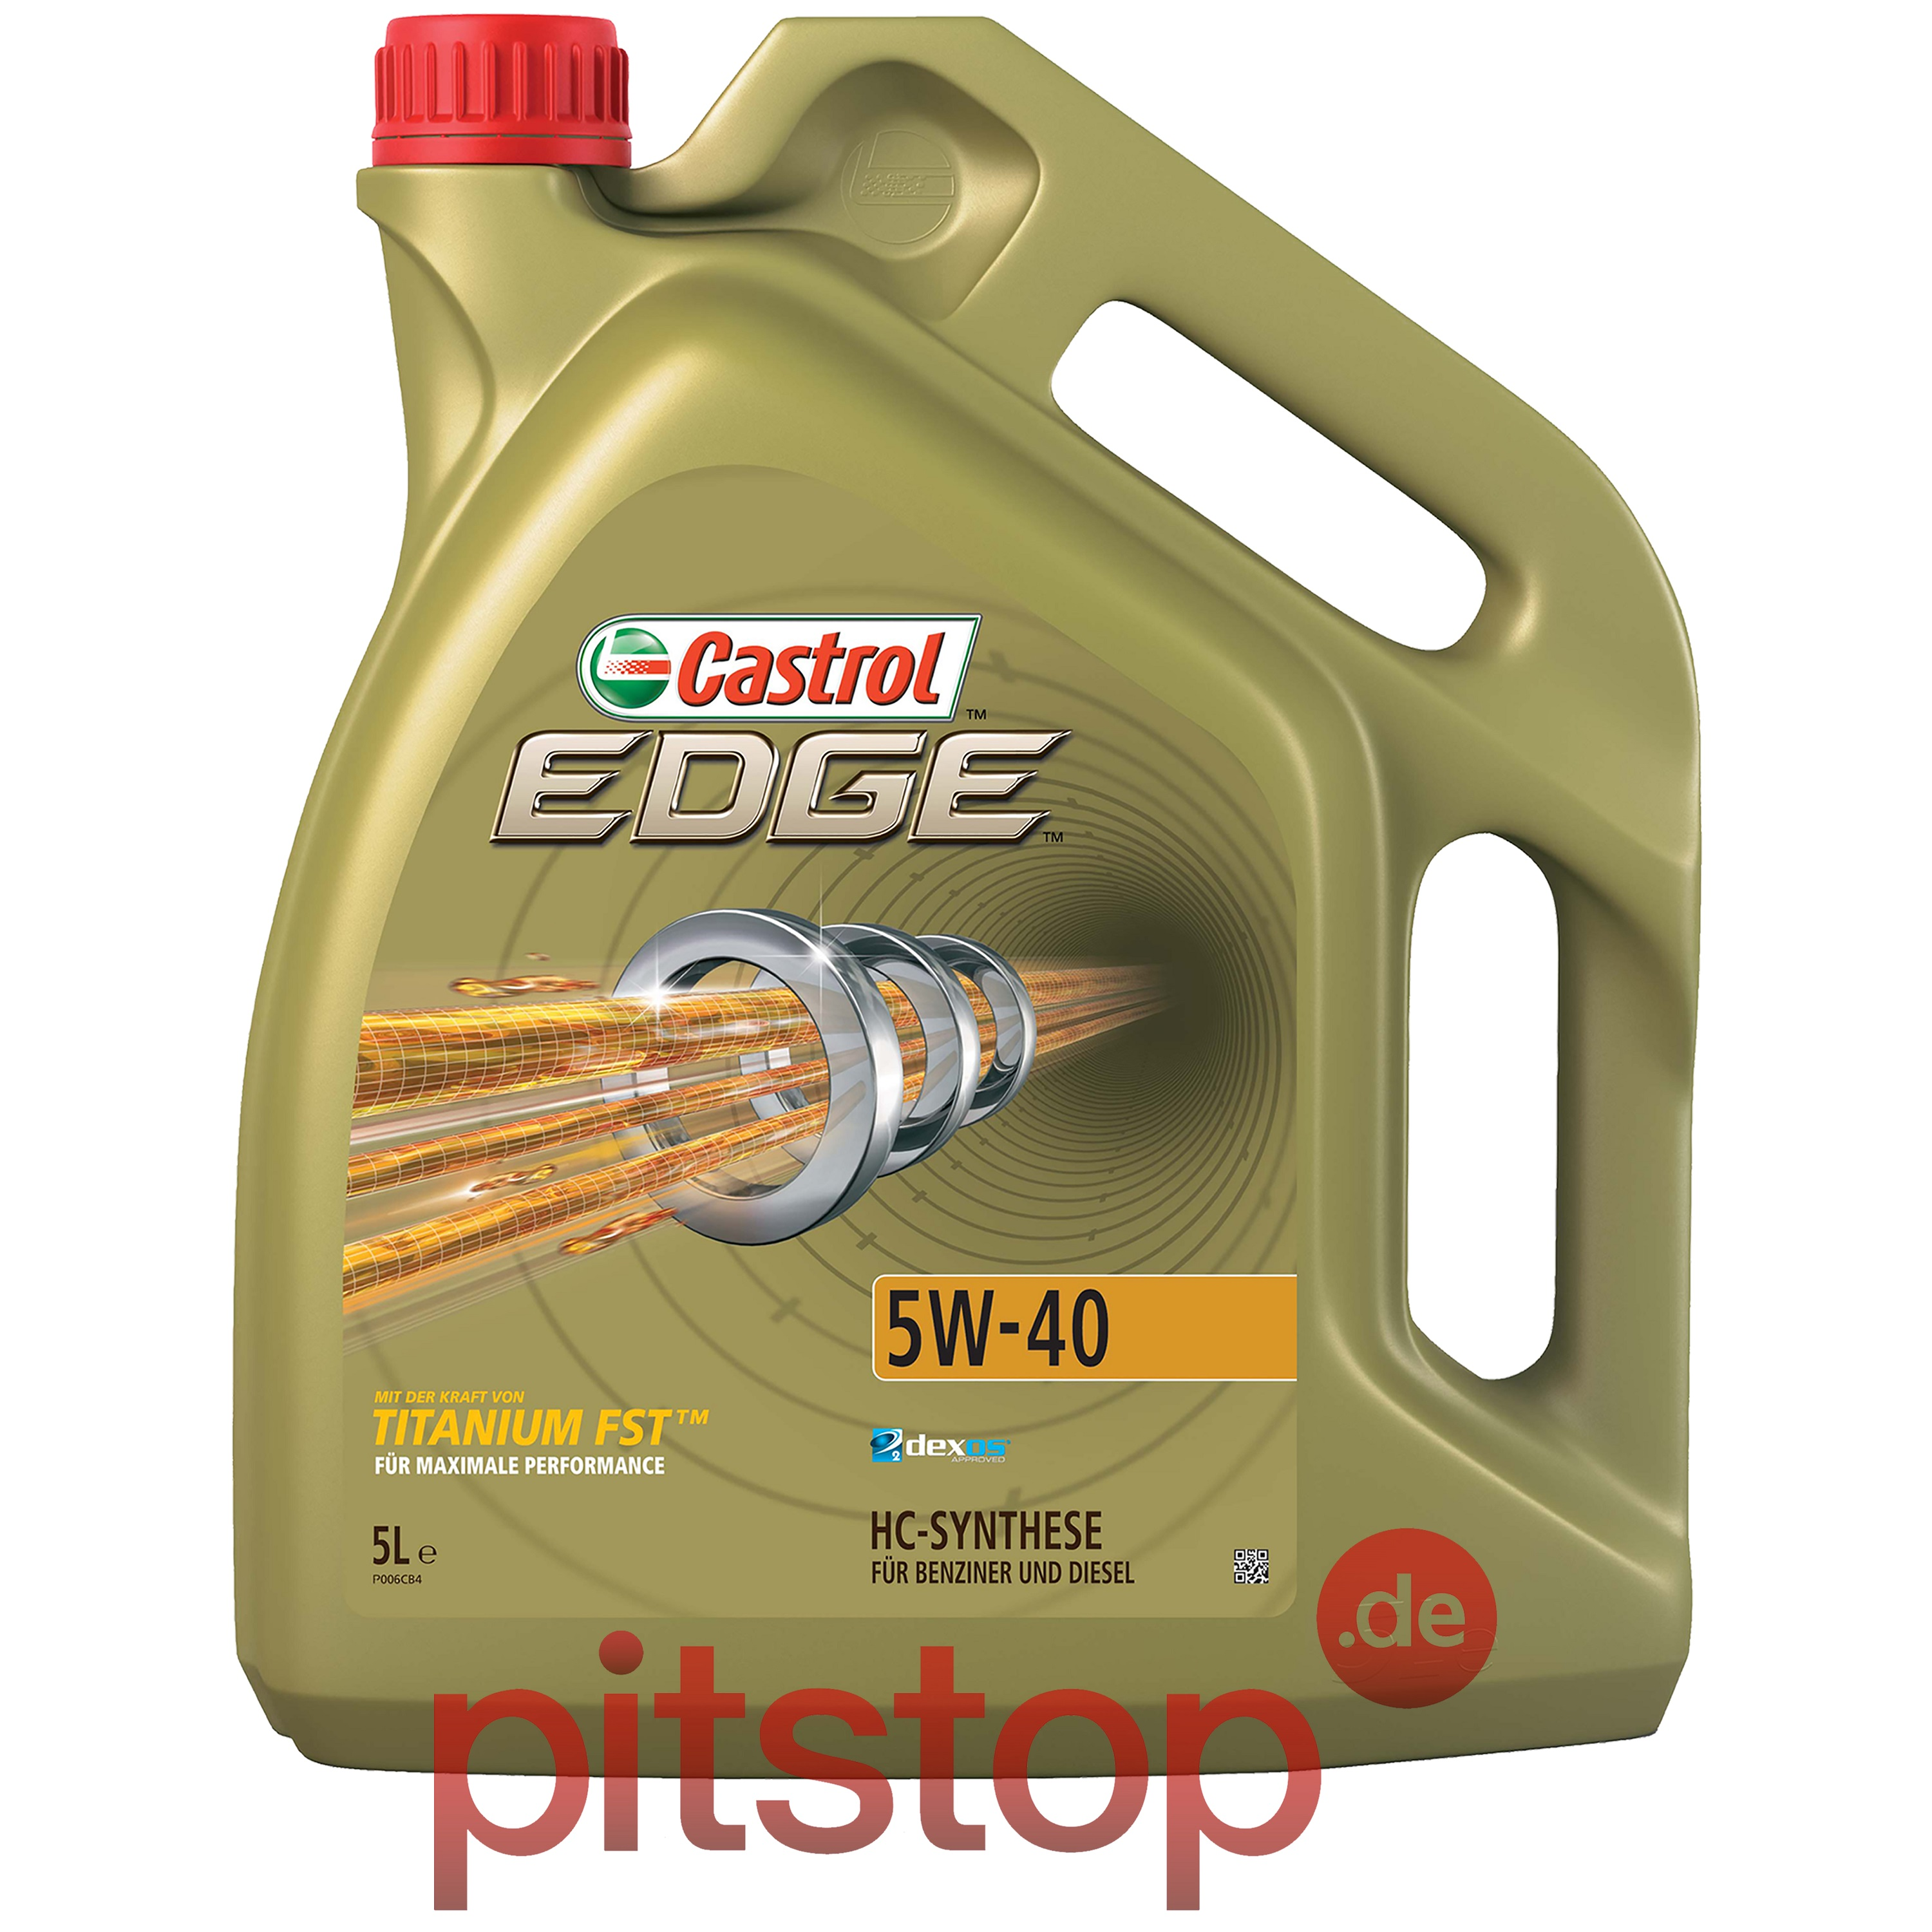 original castrol edge titanium fst 5w 40 5l 5 liter motor l l 1535f1 ebay. Black Bedroom Furniture Sets. Home Design Ideas